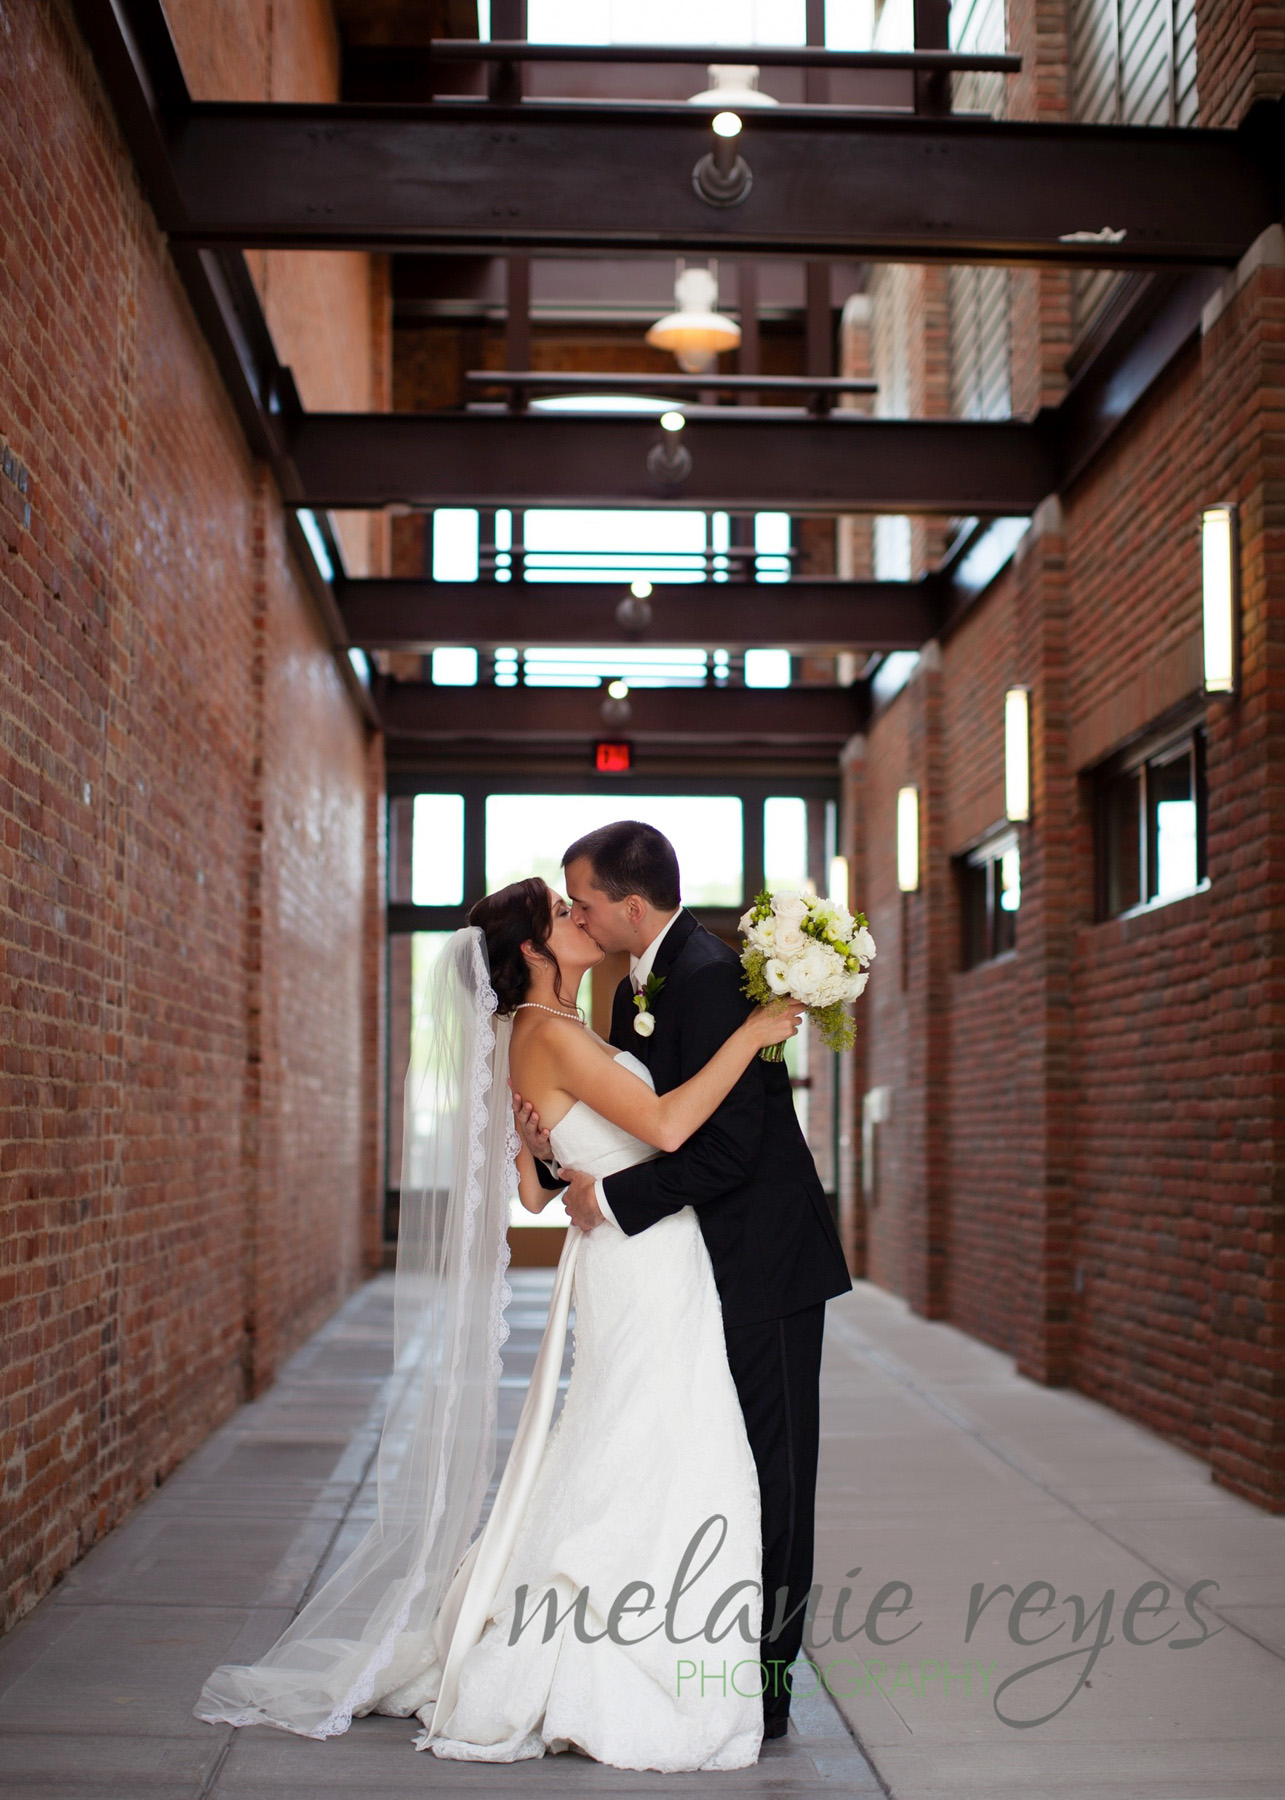 ann_arbor_wedding_photographer__020